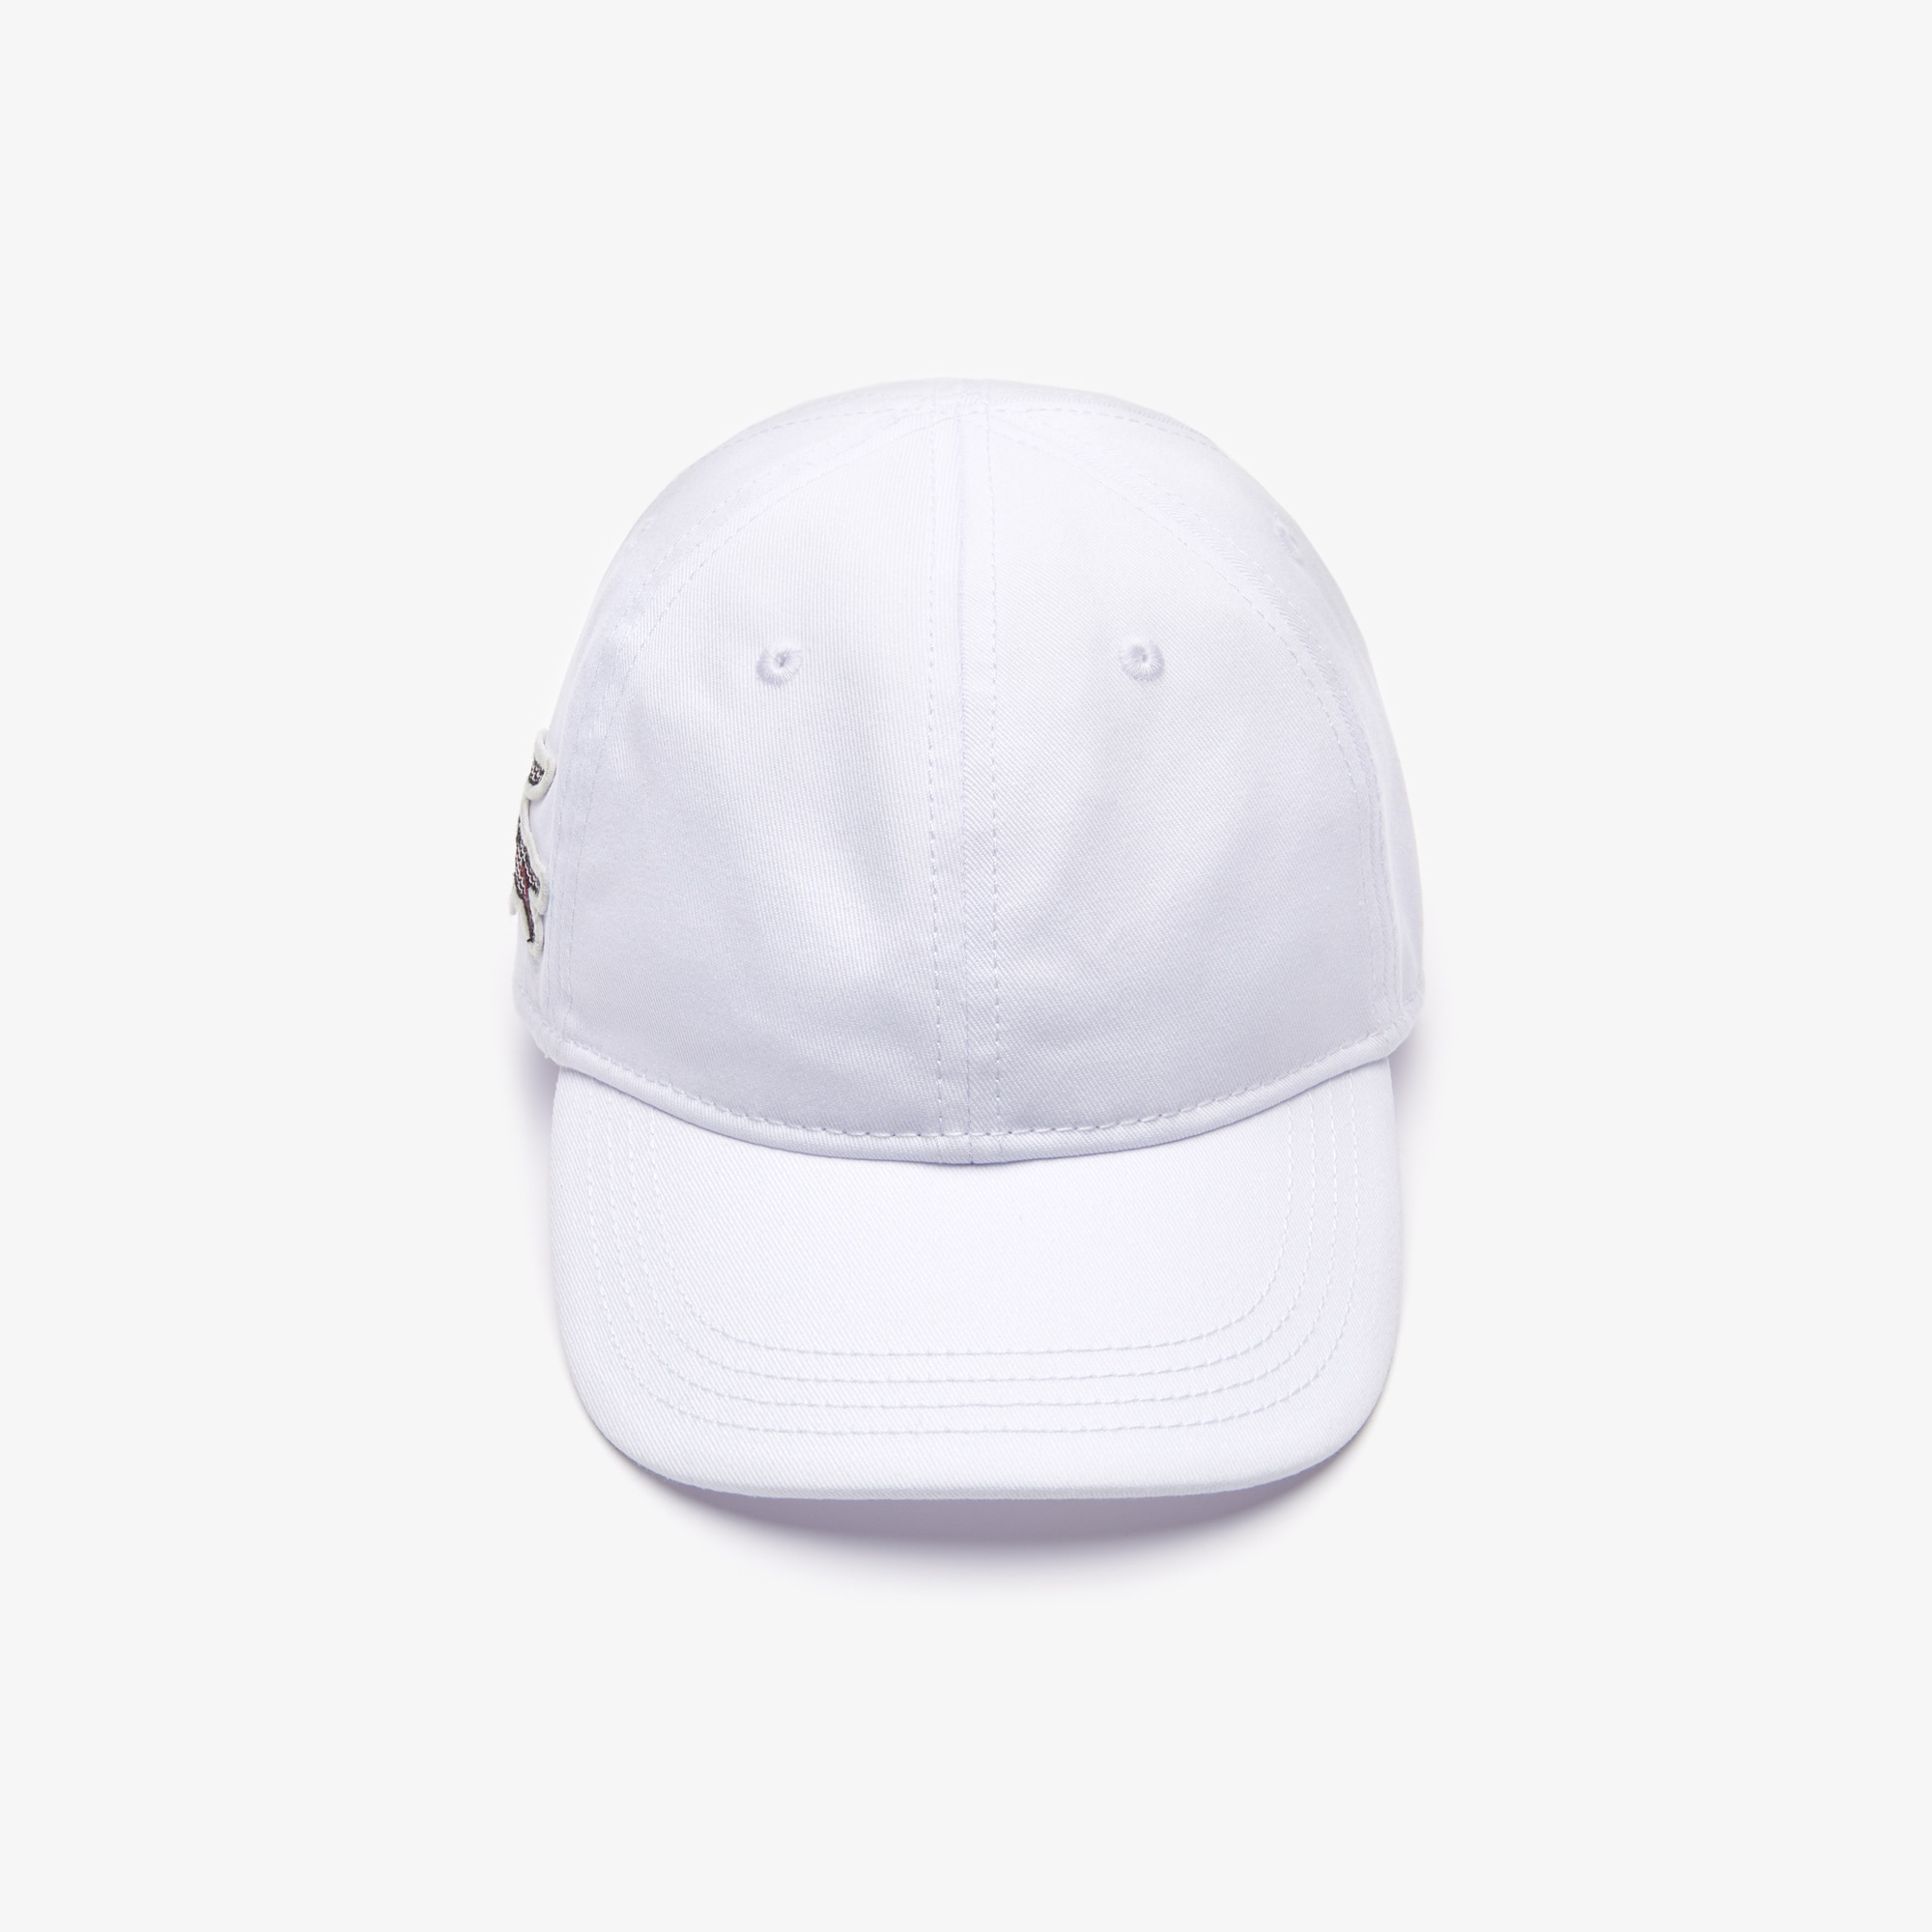 Women's Check Croc Badge Cotton Cap